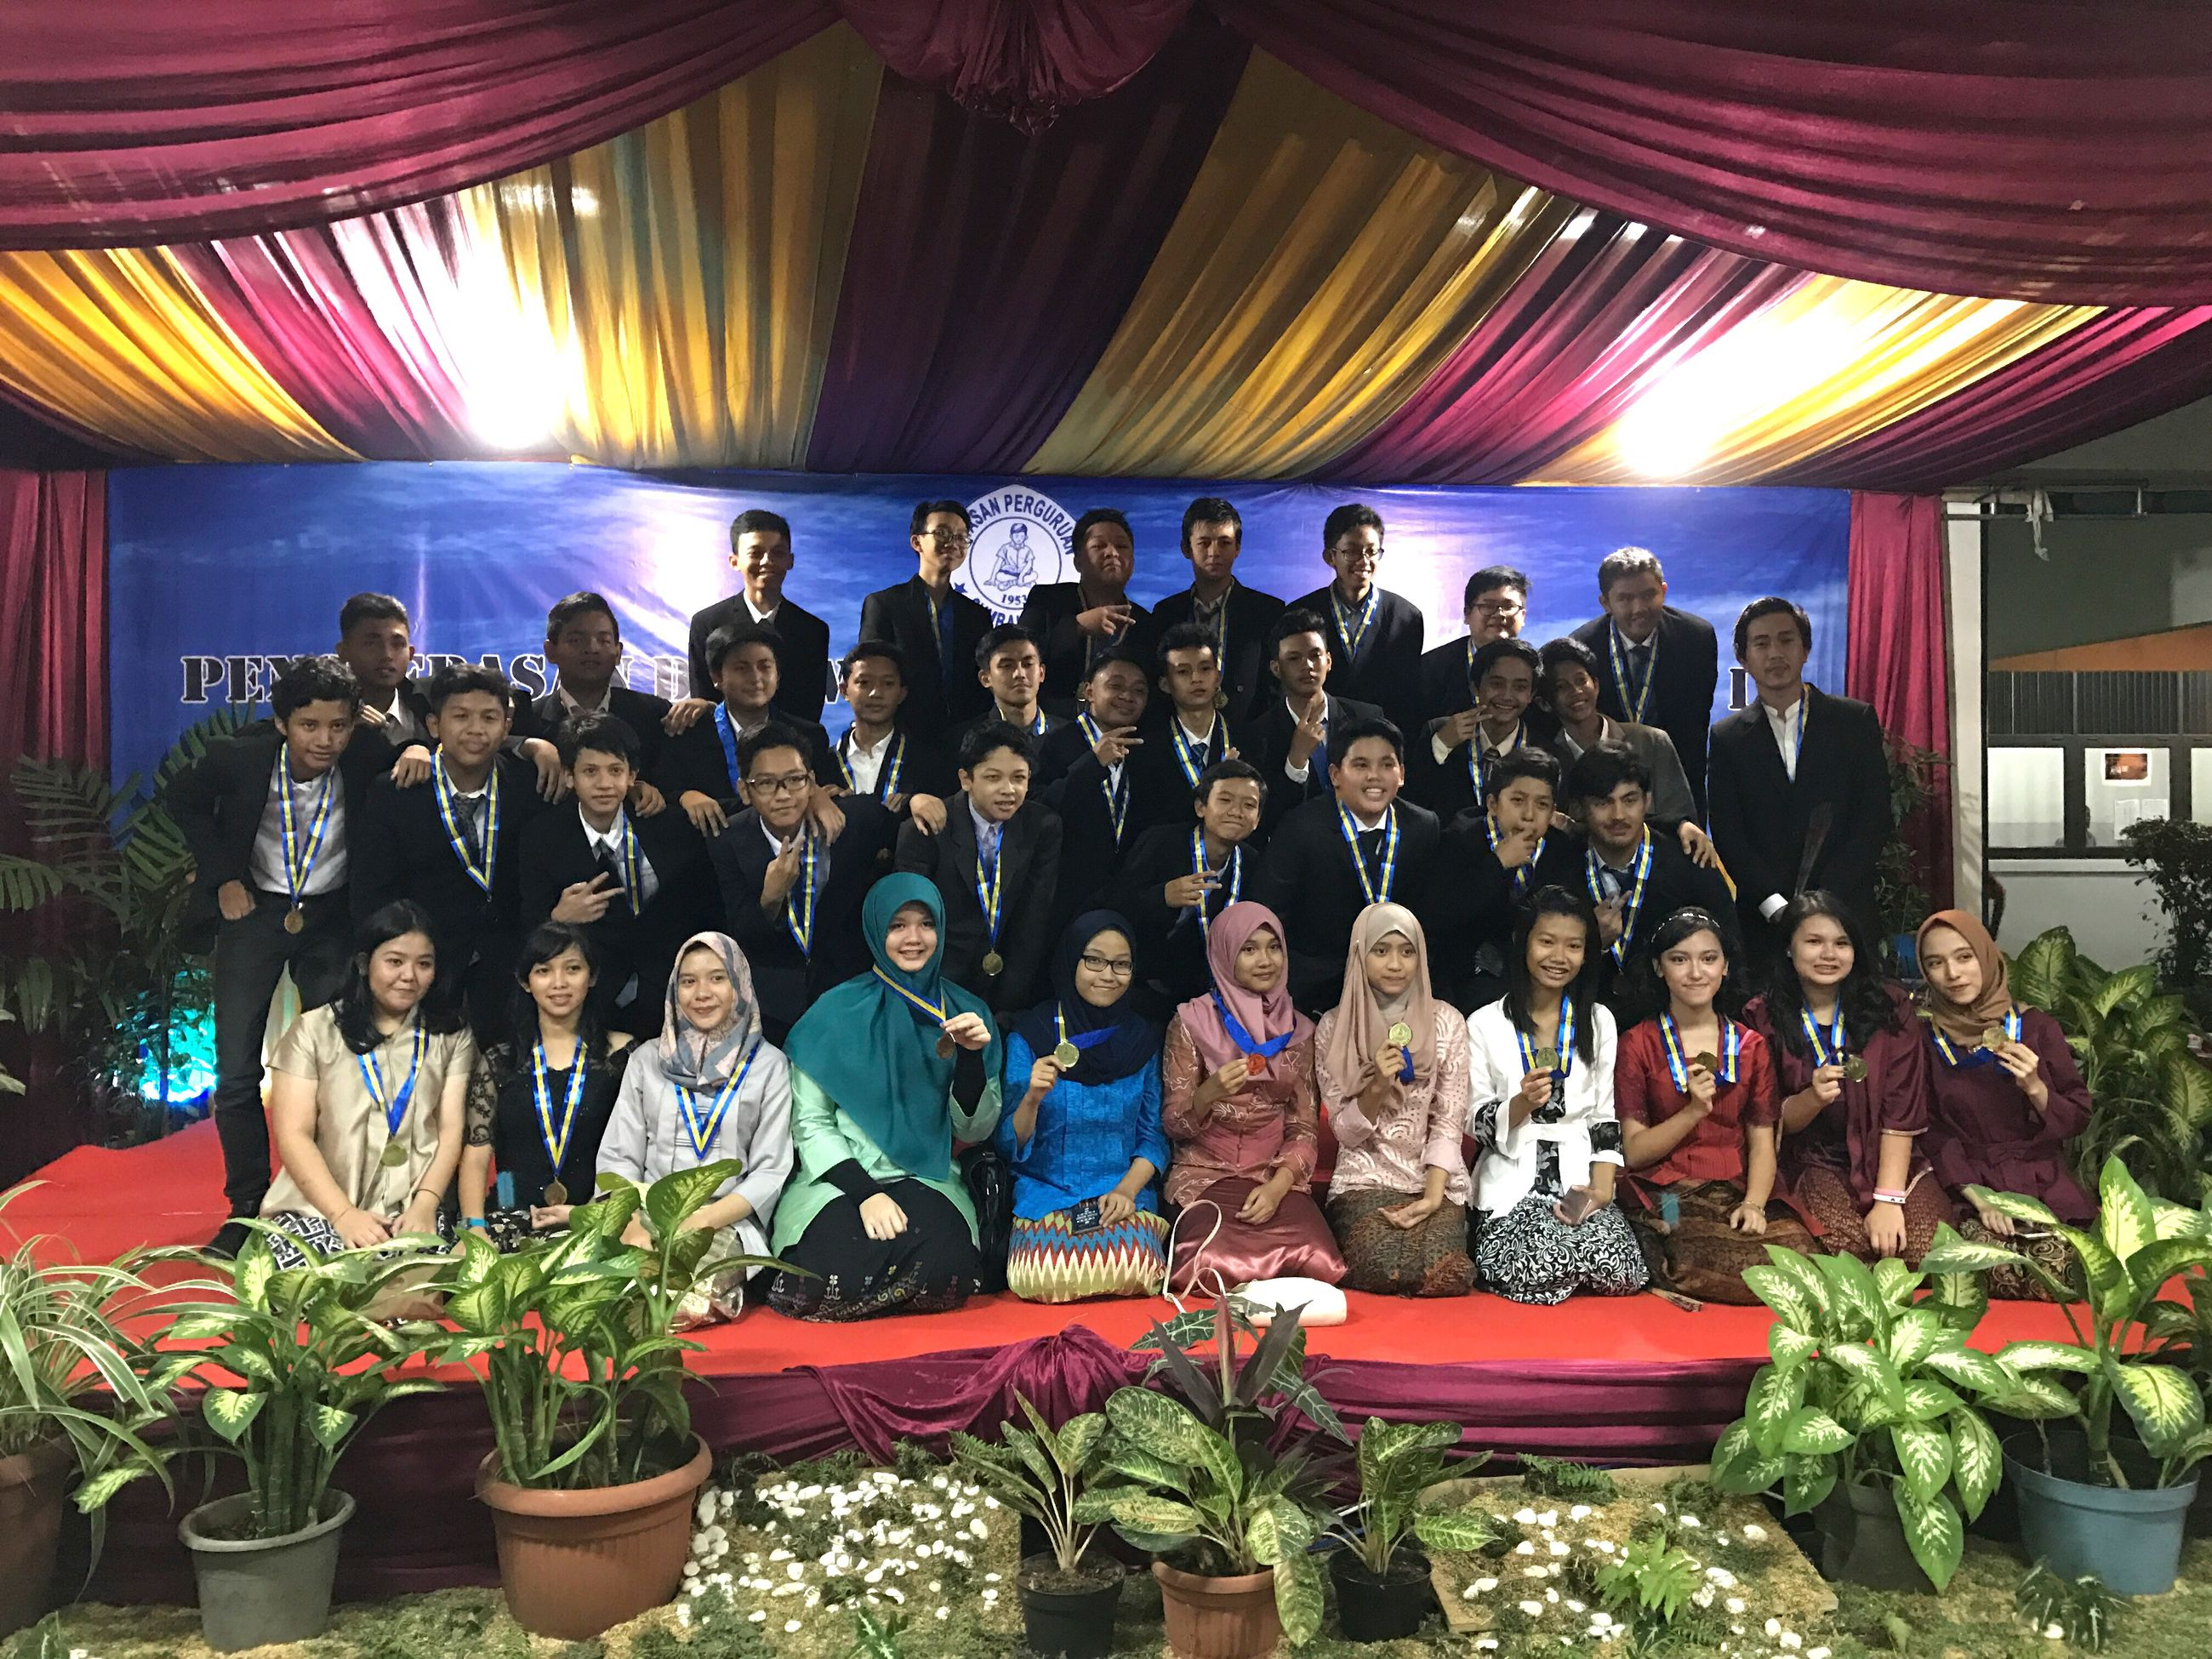 large group of people, indoors, real people, illuminated, leisure activity, men, curtain, sitting, enjoyment, lifestyles, crowd, standing, audience, arts culture and entertainment, women, young adult, day, people